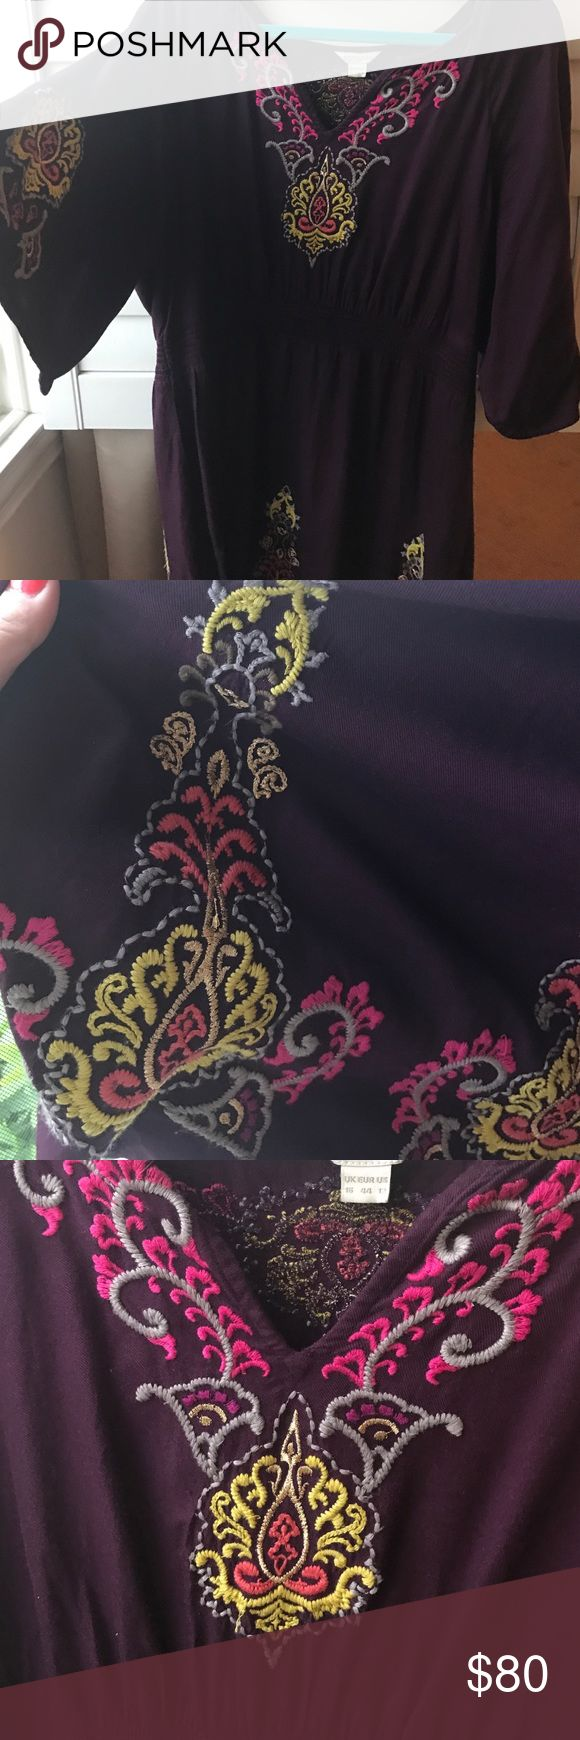 Authentic monsoon dress Embroidered monsoon dress excellent condition trendy dress Monsoon Other